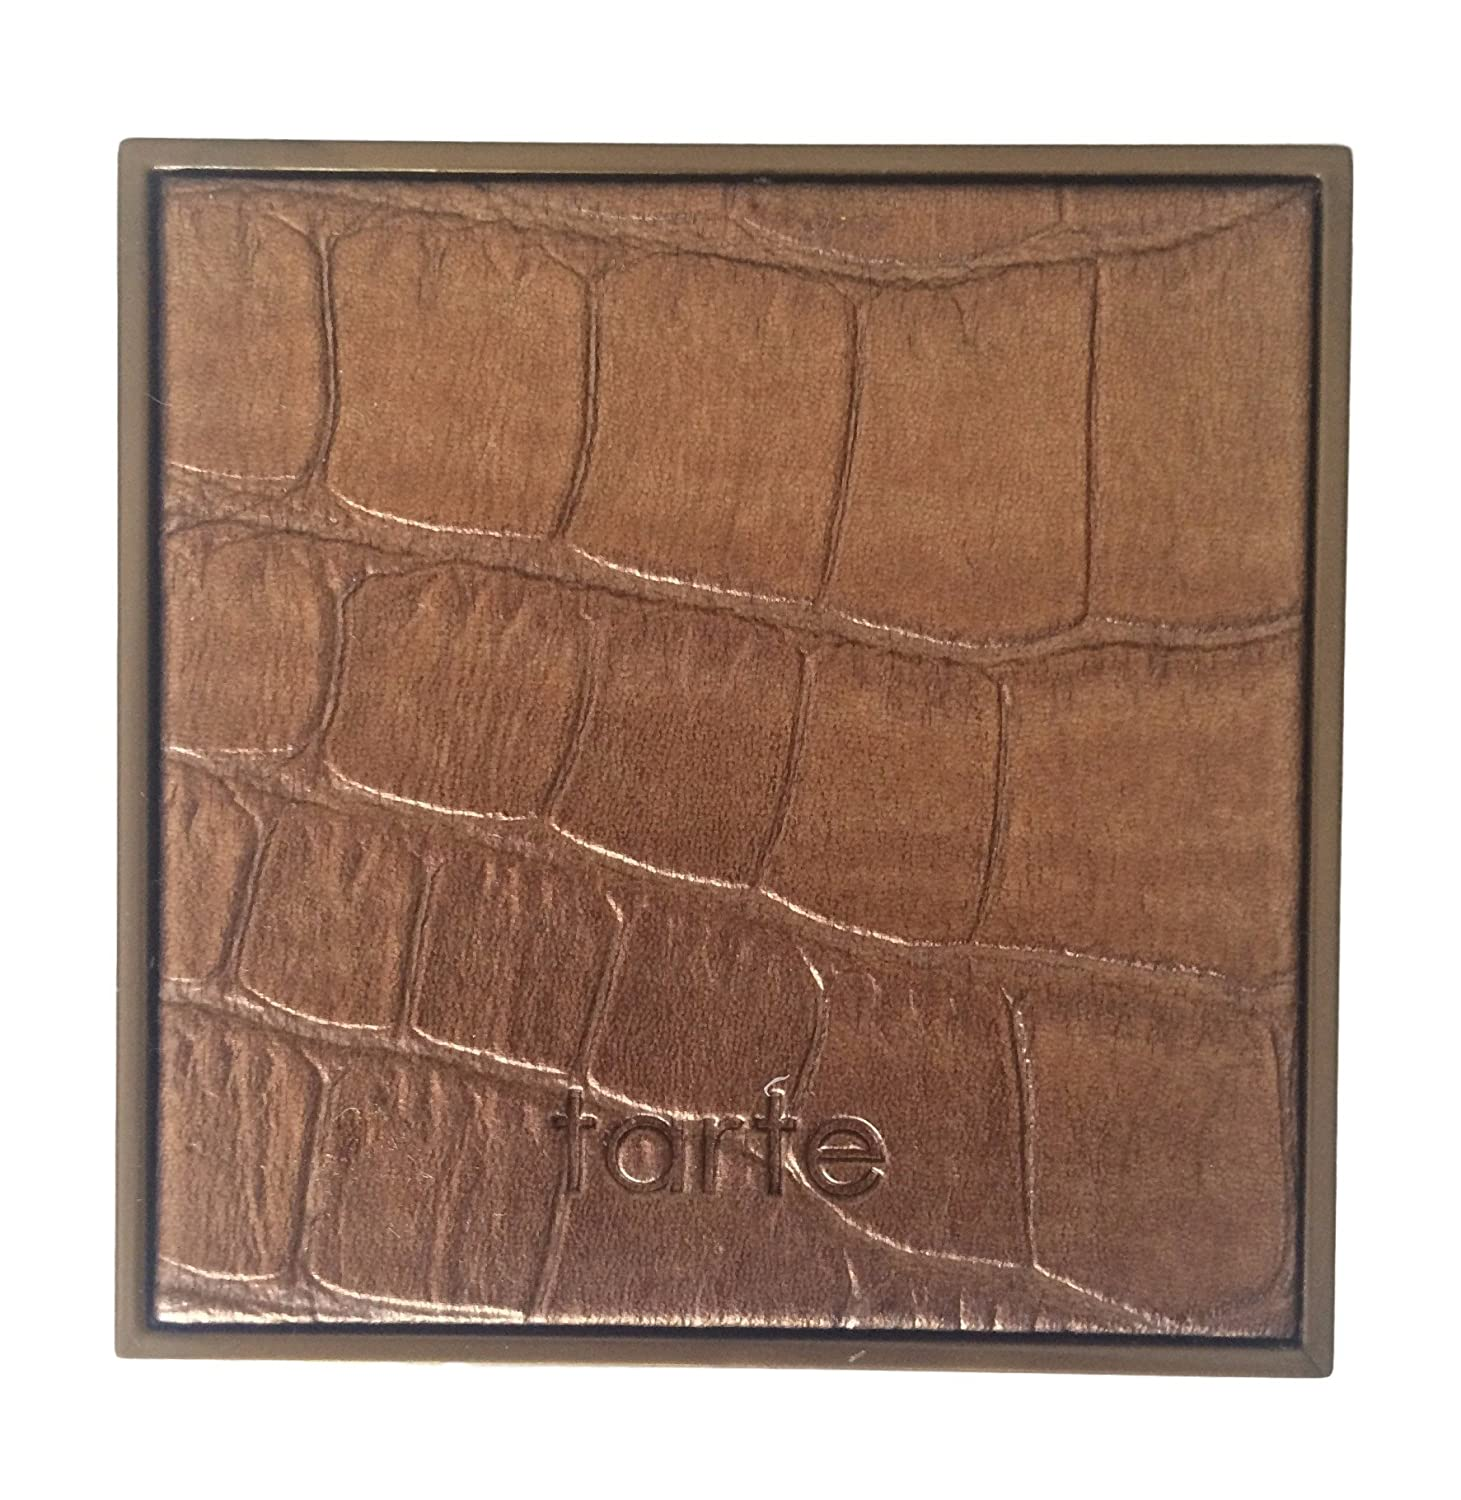 Tarte Amazonian Clay Waterproof Bronzer In Park Ave Princess Travel Size 0.11 Oz by Tarte